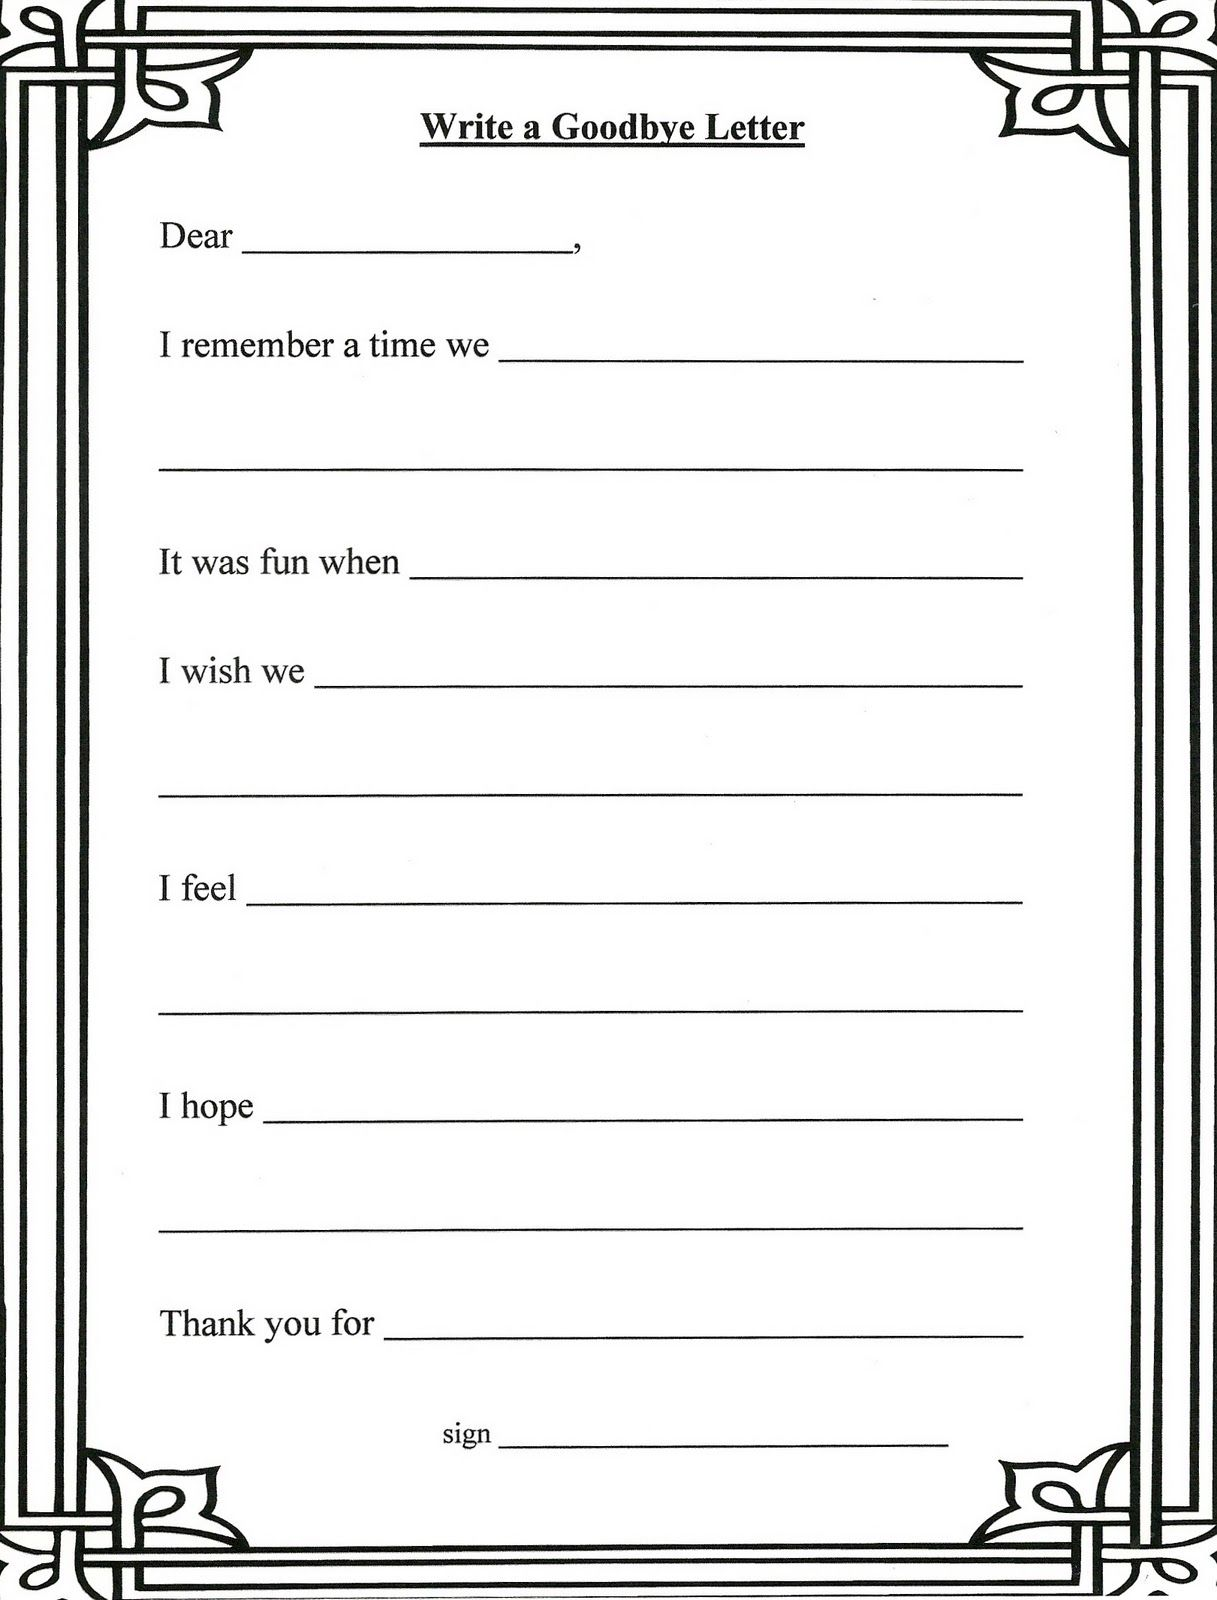 Grief And Loss Worksheets  Writing A Letter To The Person Who Has